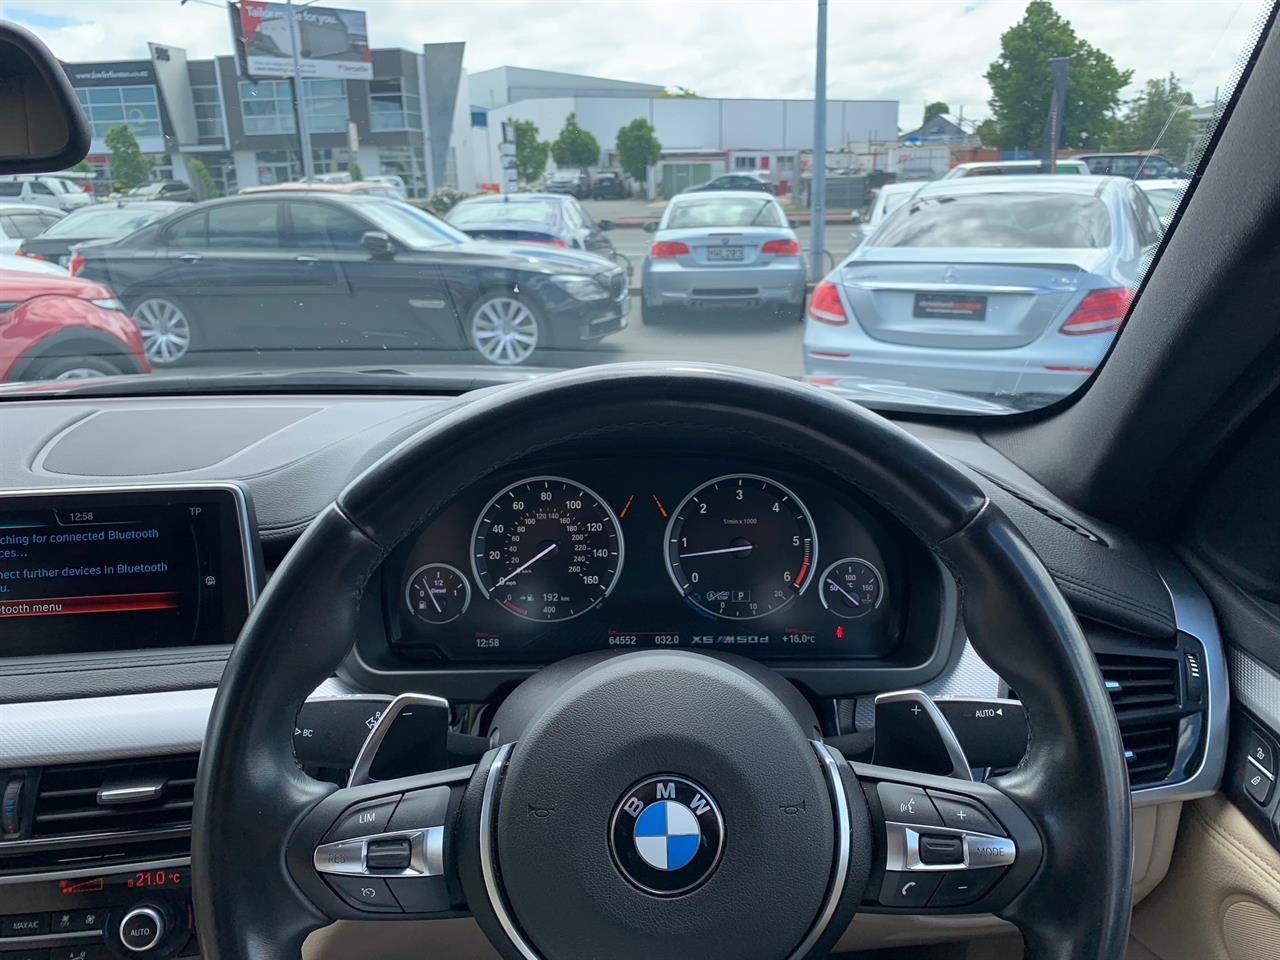 image-17, 2015 BMW X6 50d Triple Turbo Motorsport Coupe at Christchurch